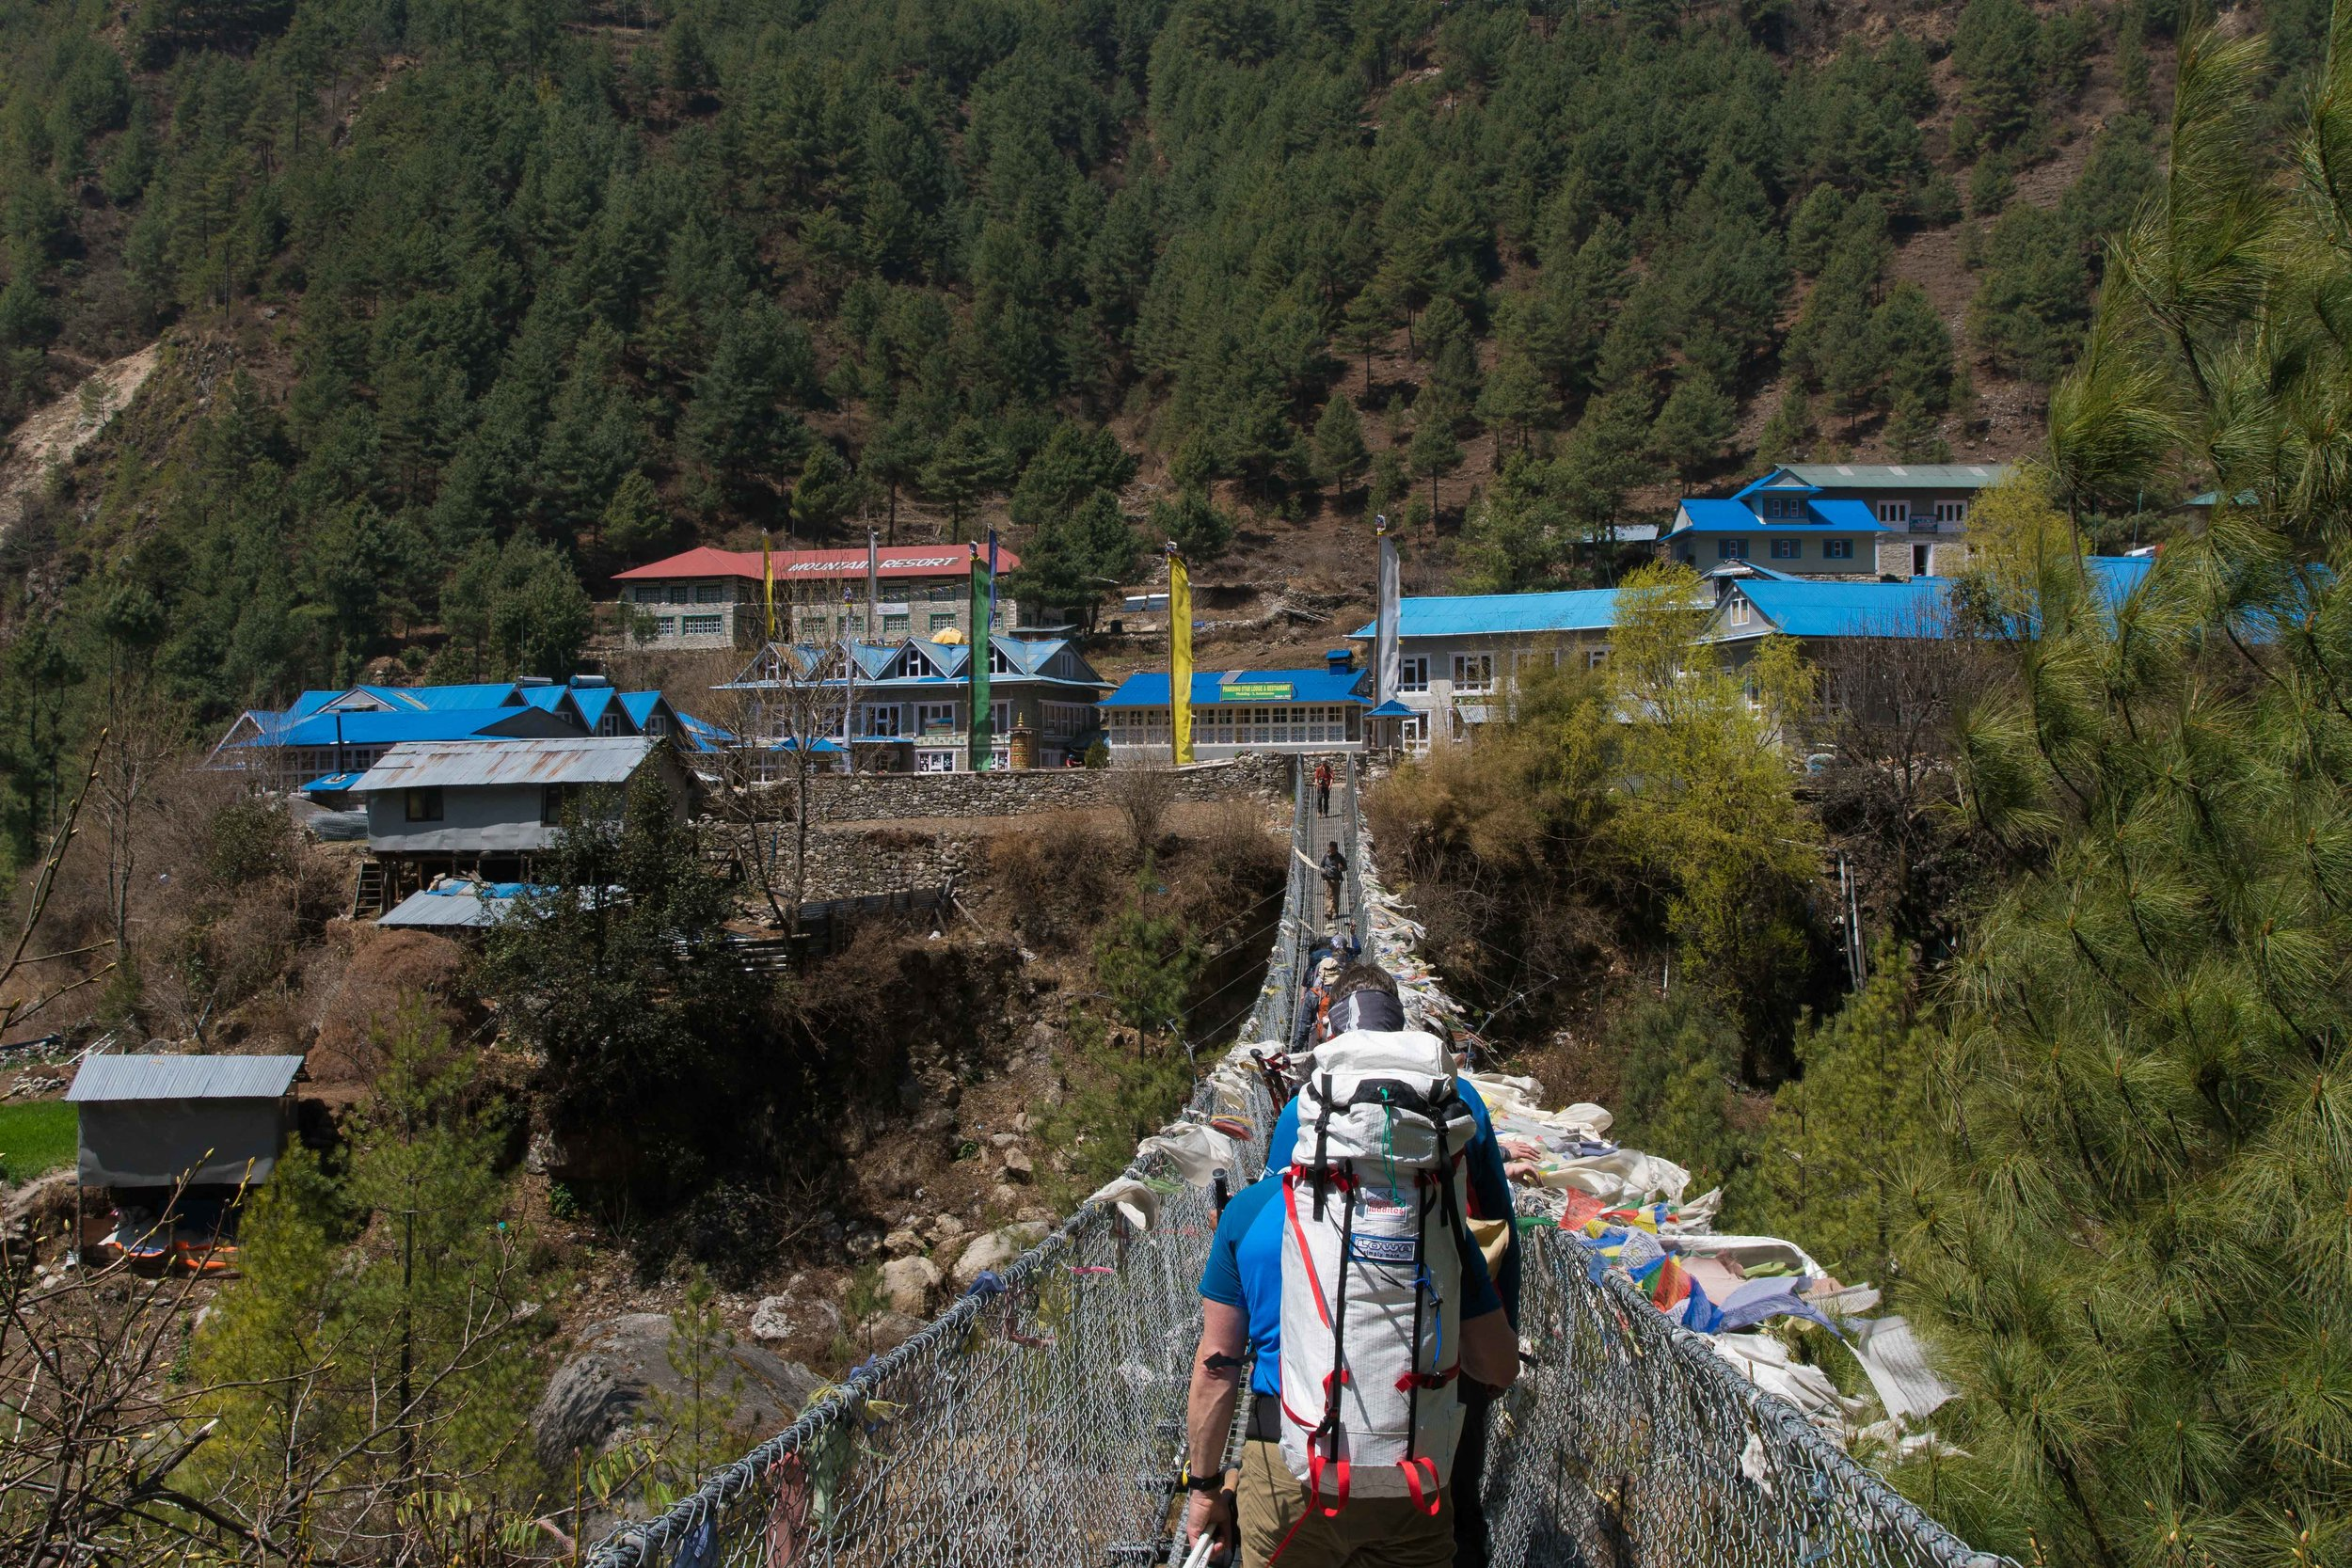 One of the first bridge crossings on the way to Namche Bazar